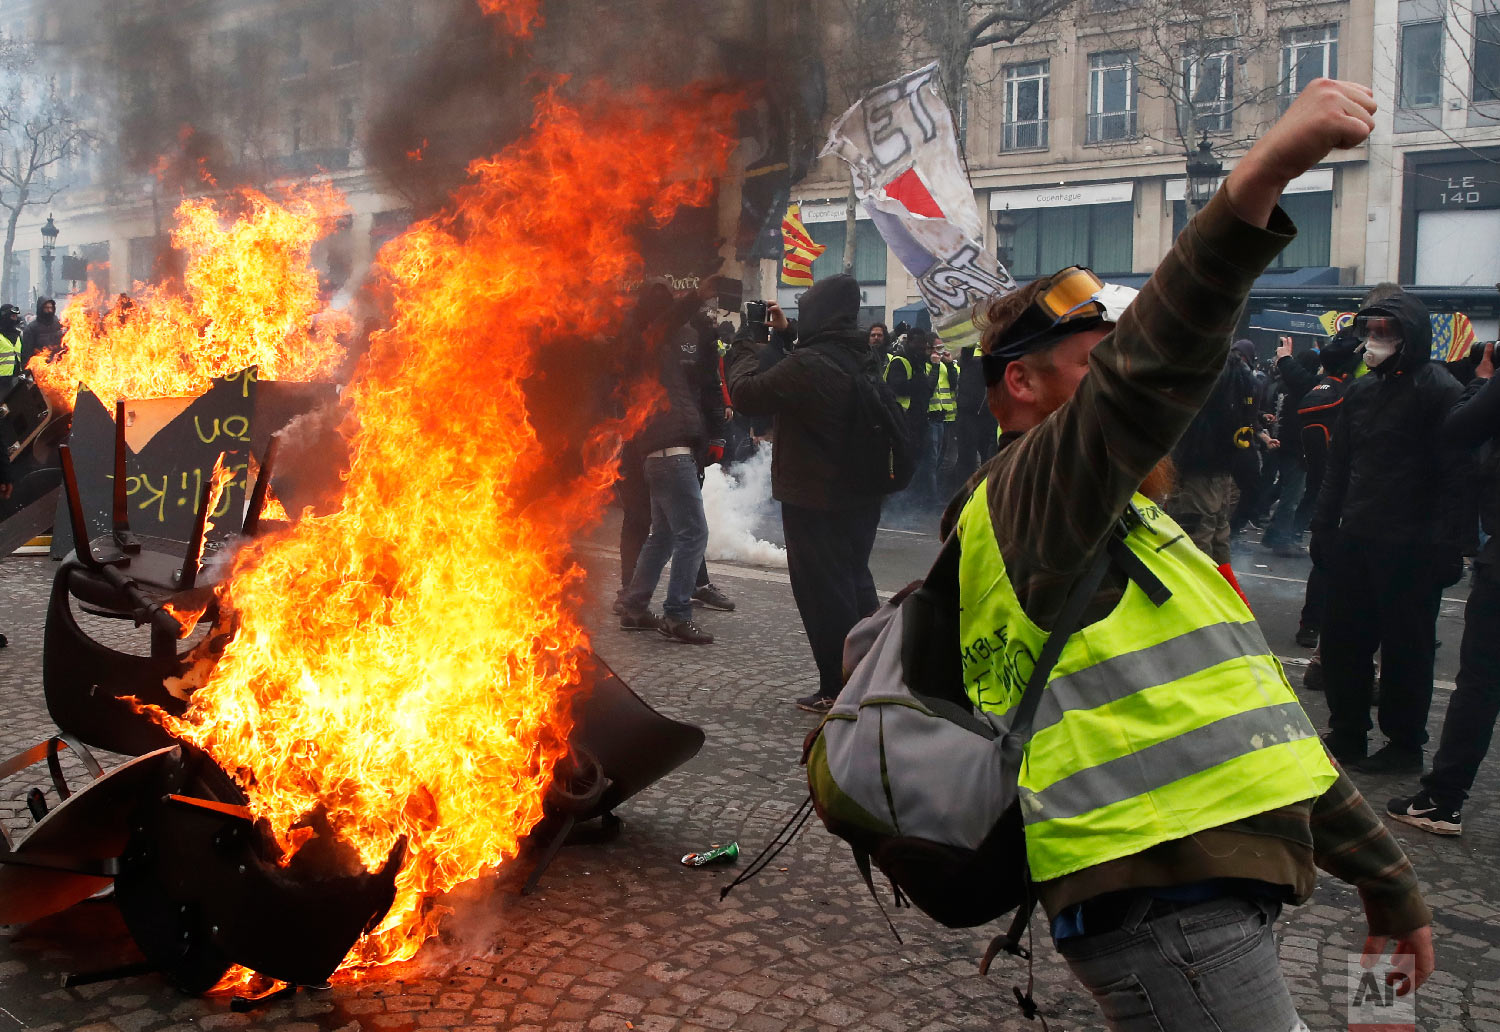 A protester shouts slogans in front of a barricade on fire during a yellow vests demonstration March 16, 2019, in Paris. (AP Photo/Christophe Ena)